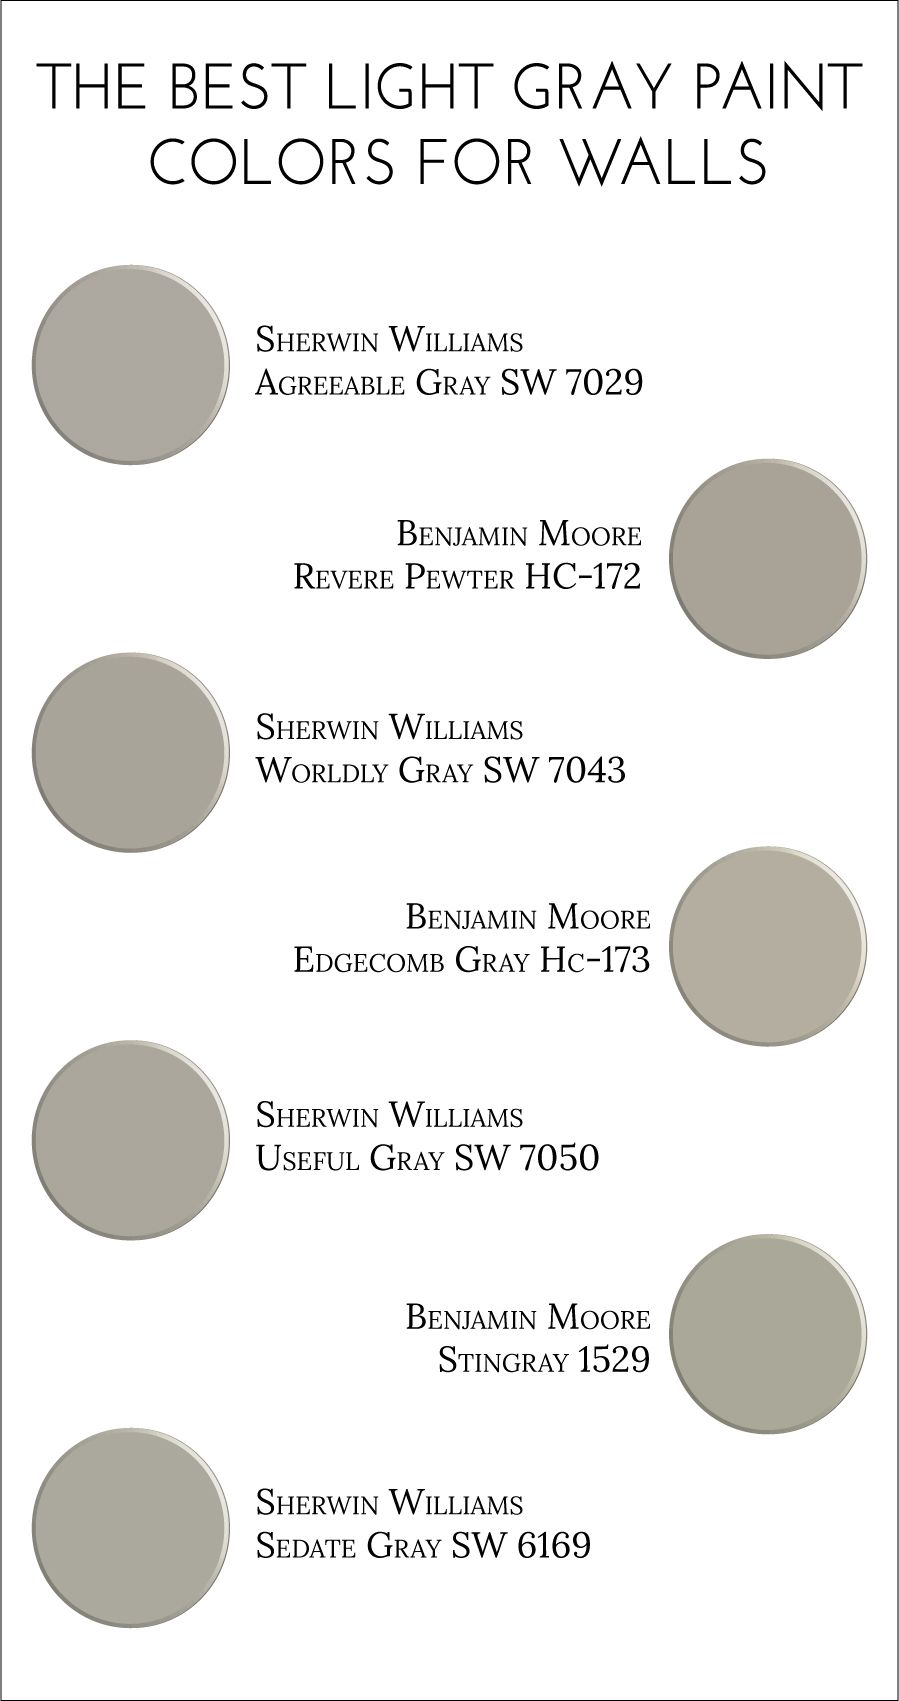 The best light gray paint colors for walls light grey paint colors light grey paint and light Great paint colors